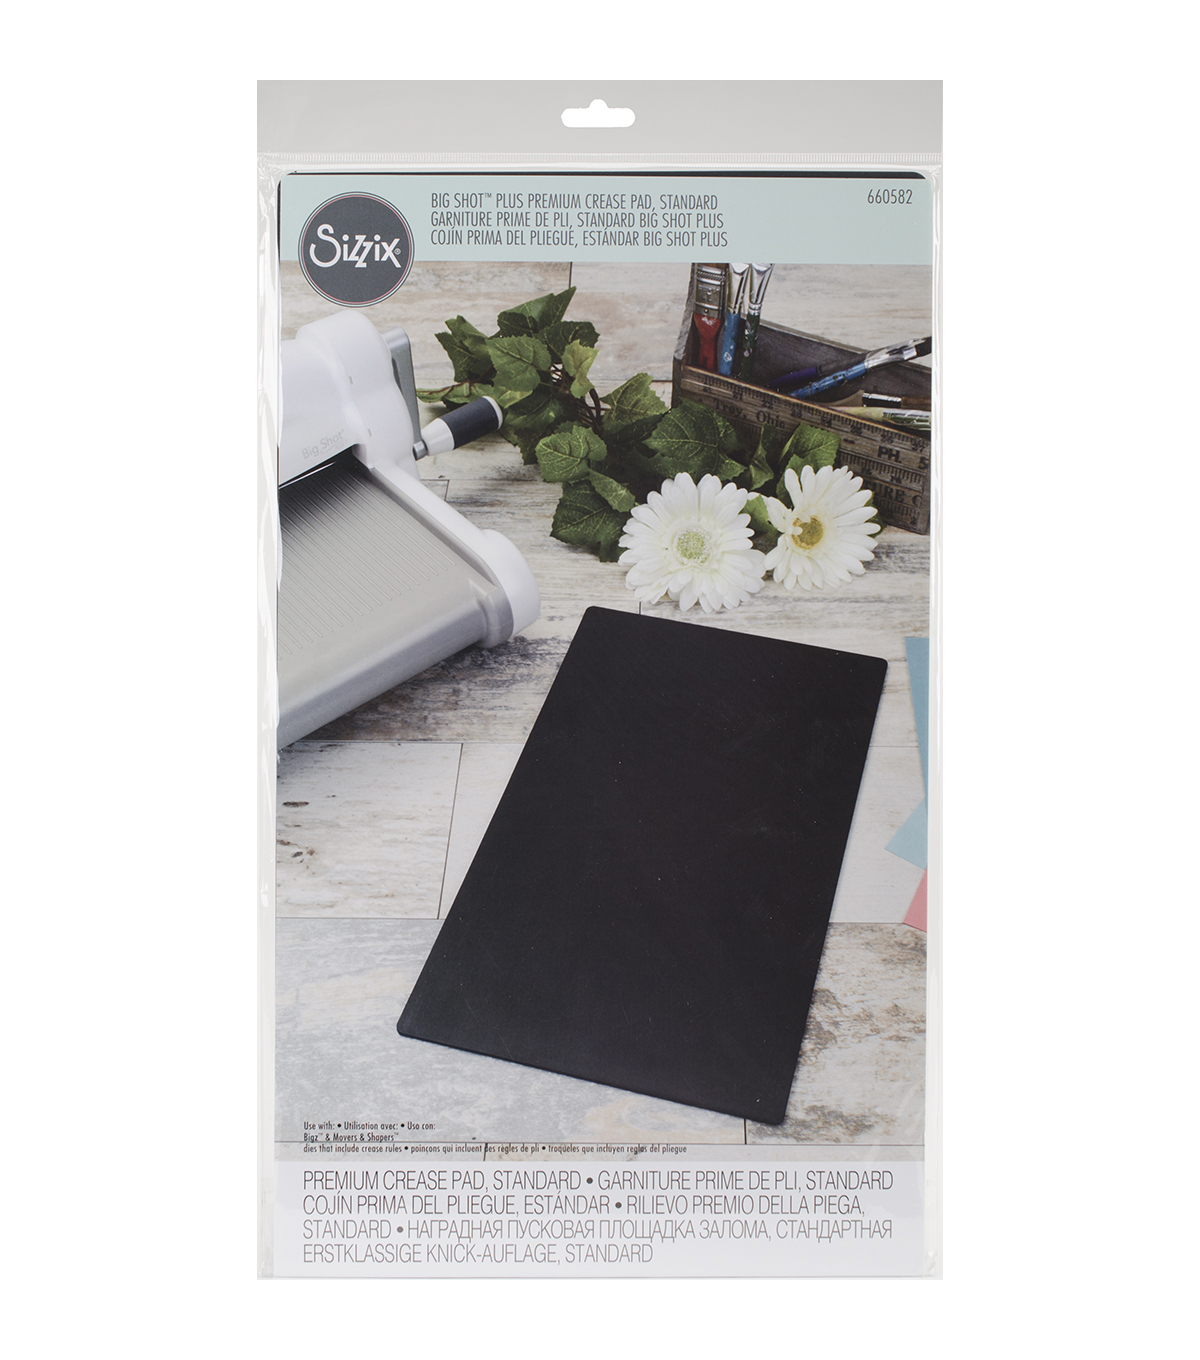 Sizzix™ Big Shot™ Plus Standard Premium Crease Pad